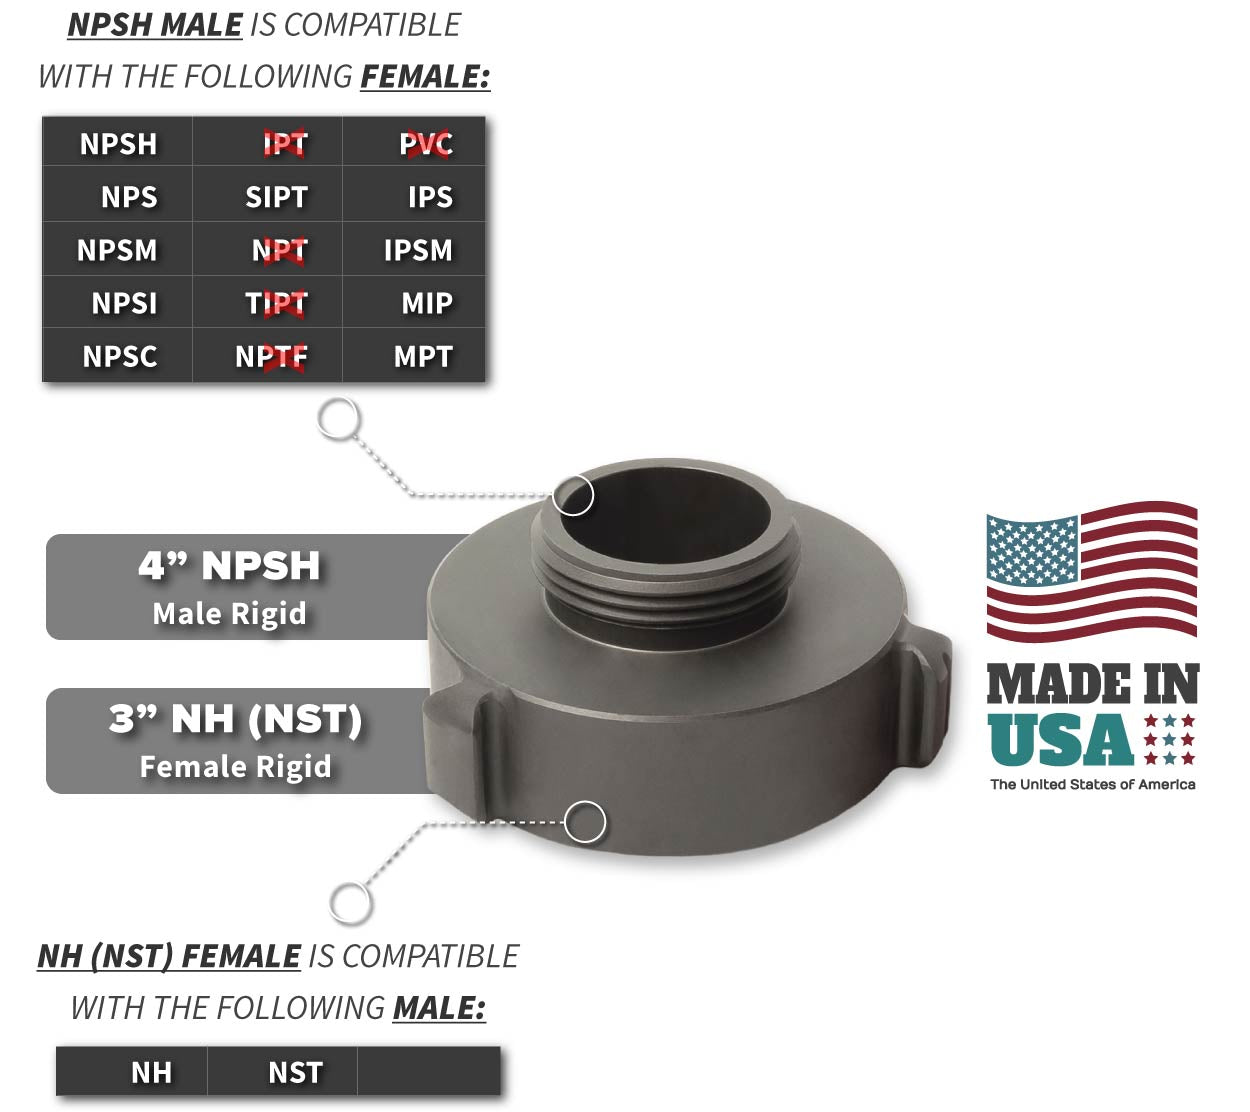 3 Inch NH-NST Female x 4 Inch NPSH Male Compatibility Thread Chart